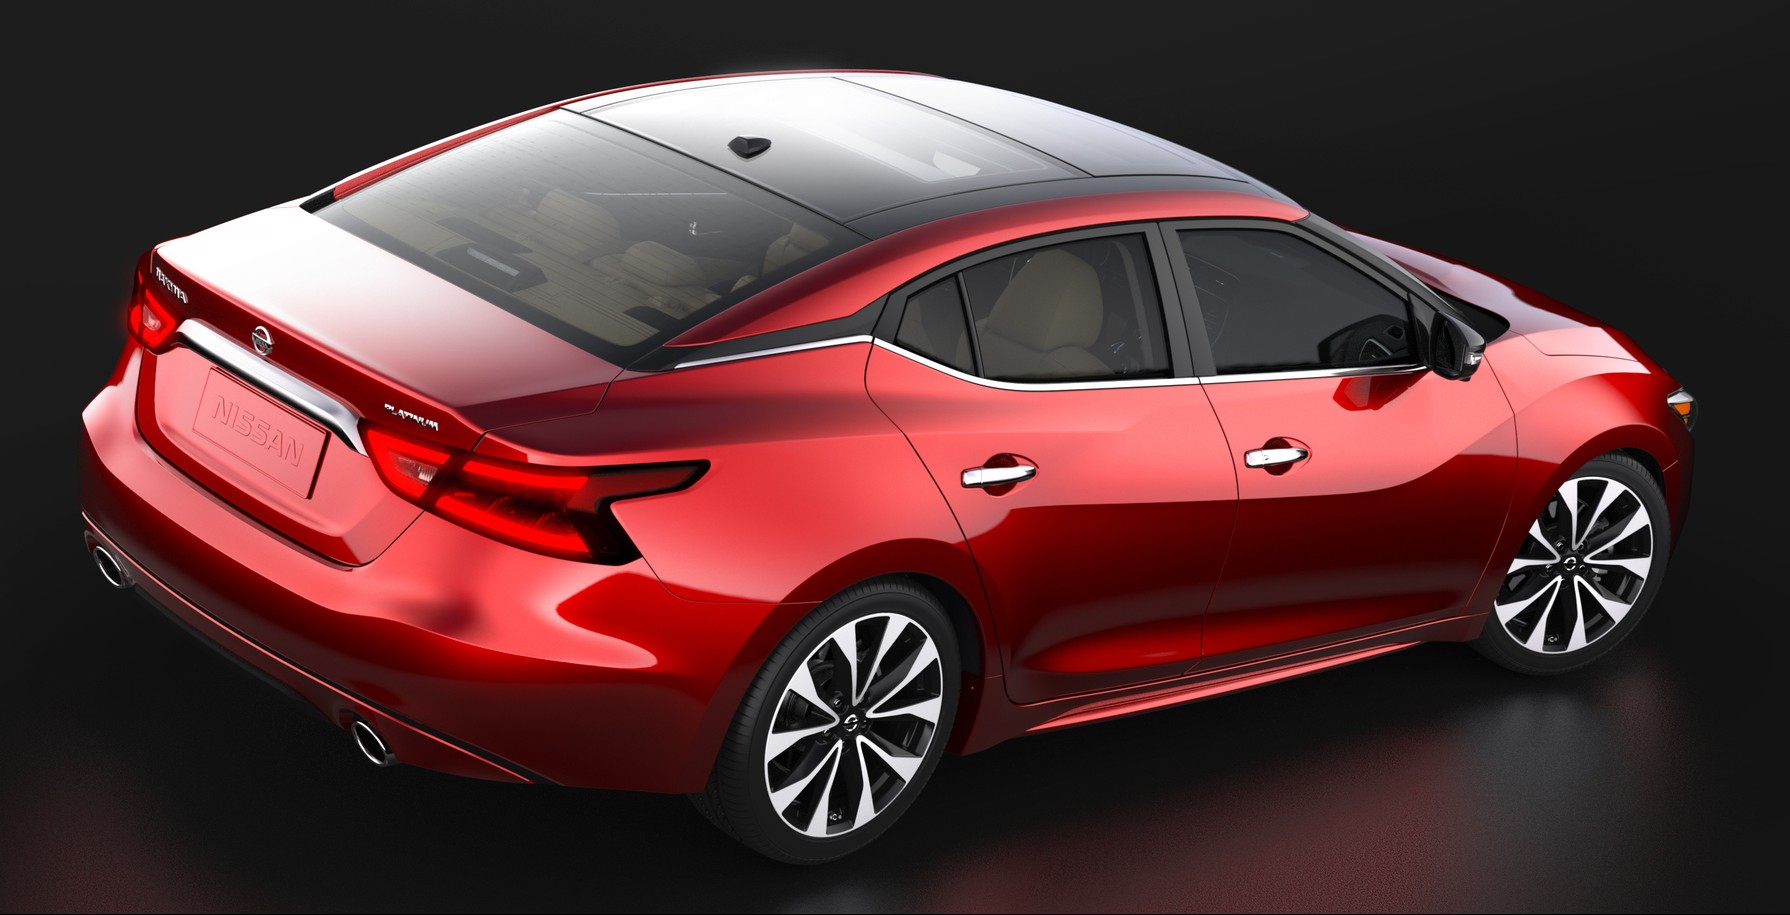 Nissan Maxima First Official Pics Of The Eighth Gen Paul